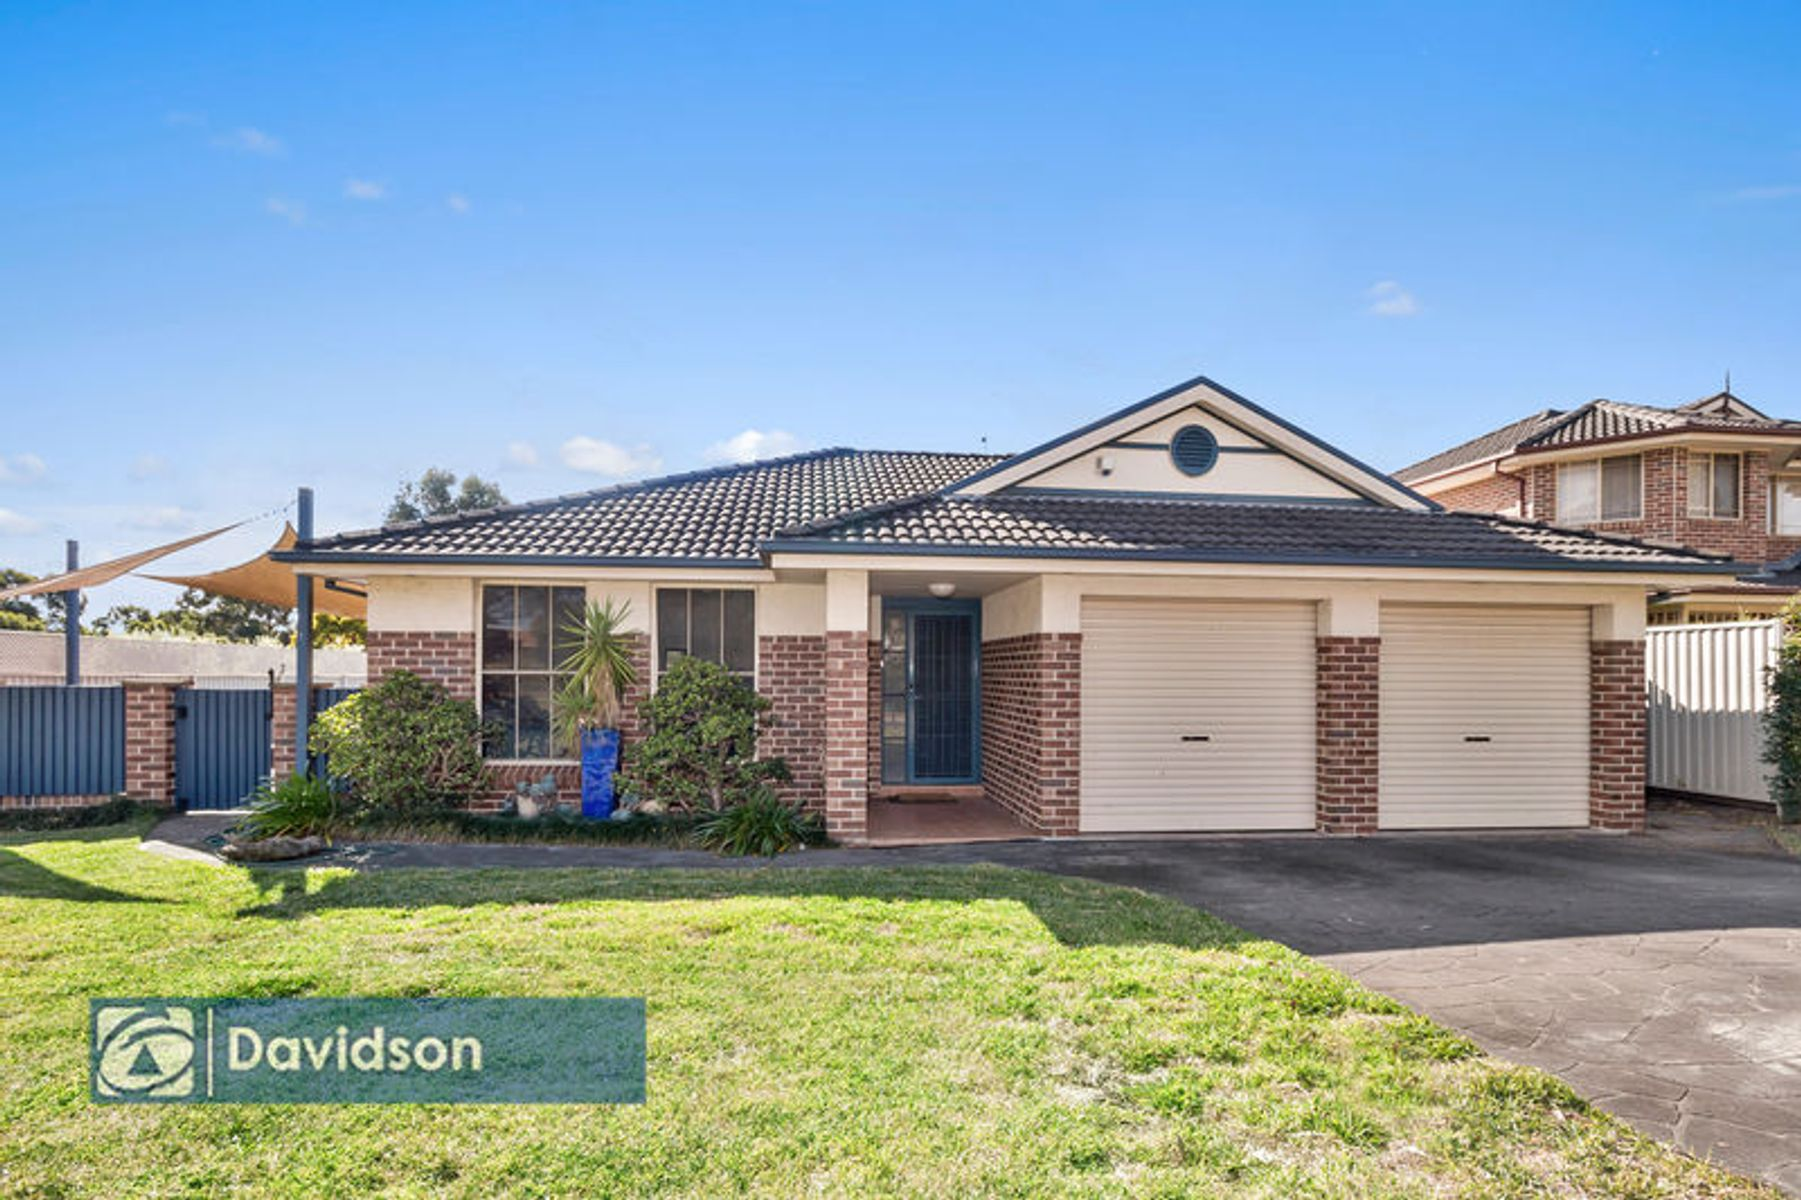 2 Costata Court, Voyager Point, NSW 2172